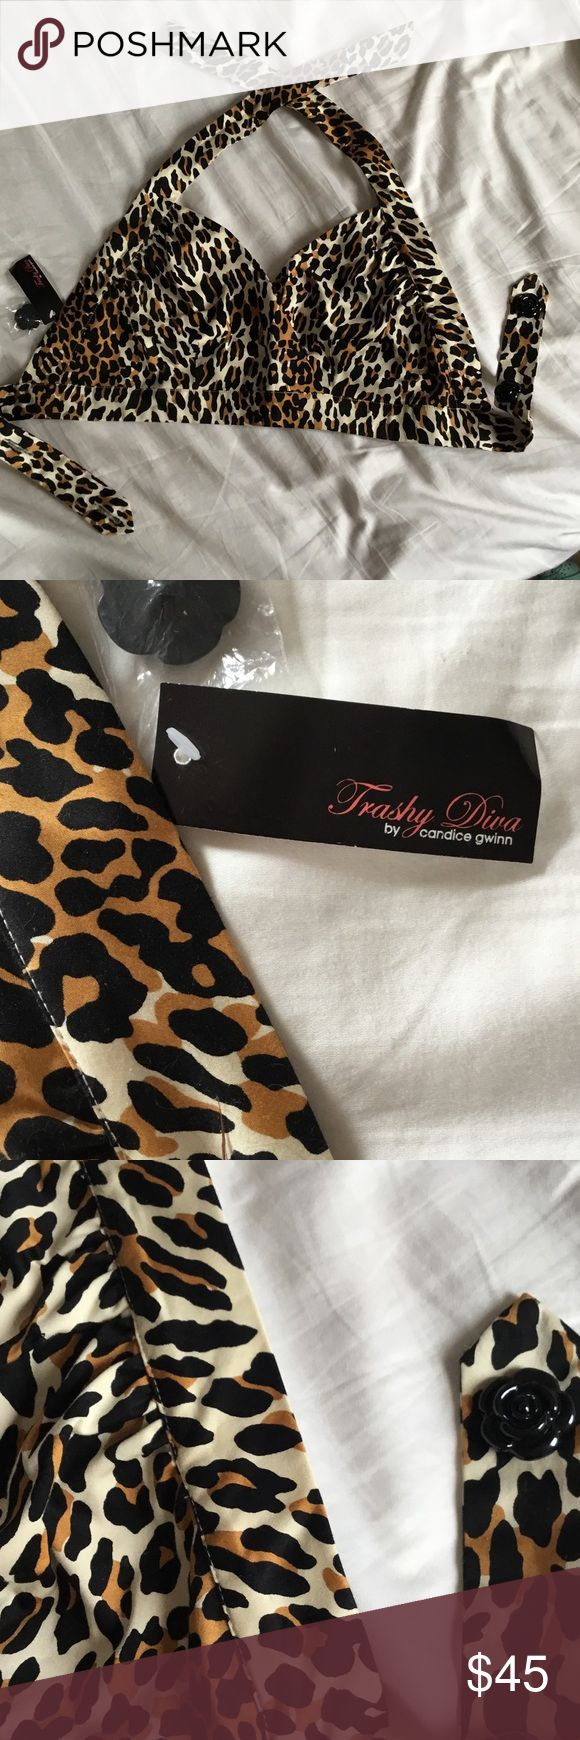 """Trashy Diva leopard beach top 12 new with tags Beautifully constructed vintage-style beach top by New Orleans boutique Trashy Diva. Leopard print cotton (97% cotton, 3% spandex), perfect for aspiring an aspiring Bettie Page. Halter top with shaped cups, underbust band has two plastic black rose buttons for extra security. Entire top is lined in more leopard fabric. Underbust strap measures 33"""", could move buttons to easily make it smaller. Trashy Diva Swim Coverups"""